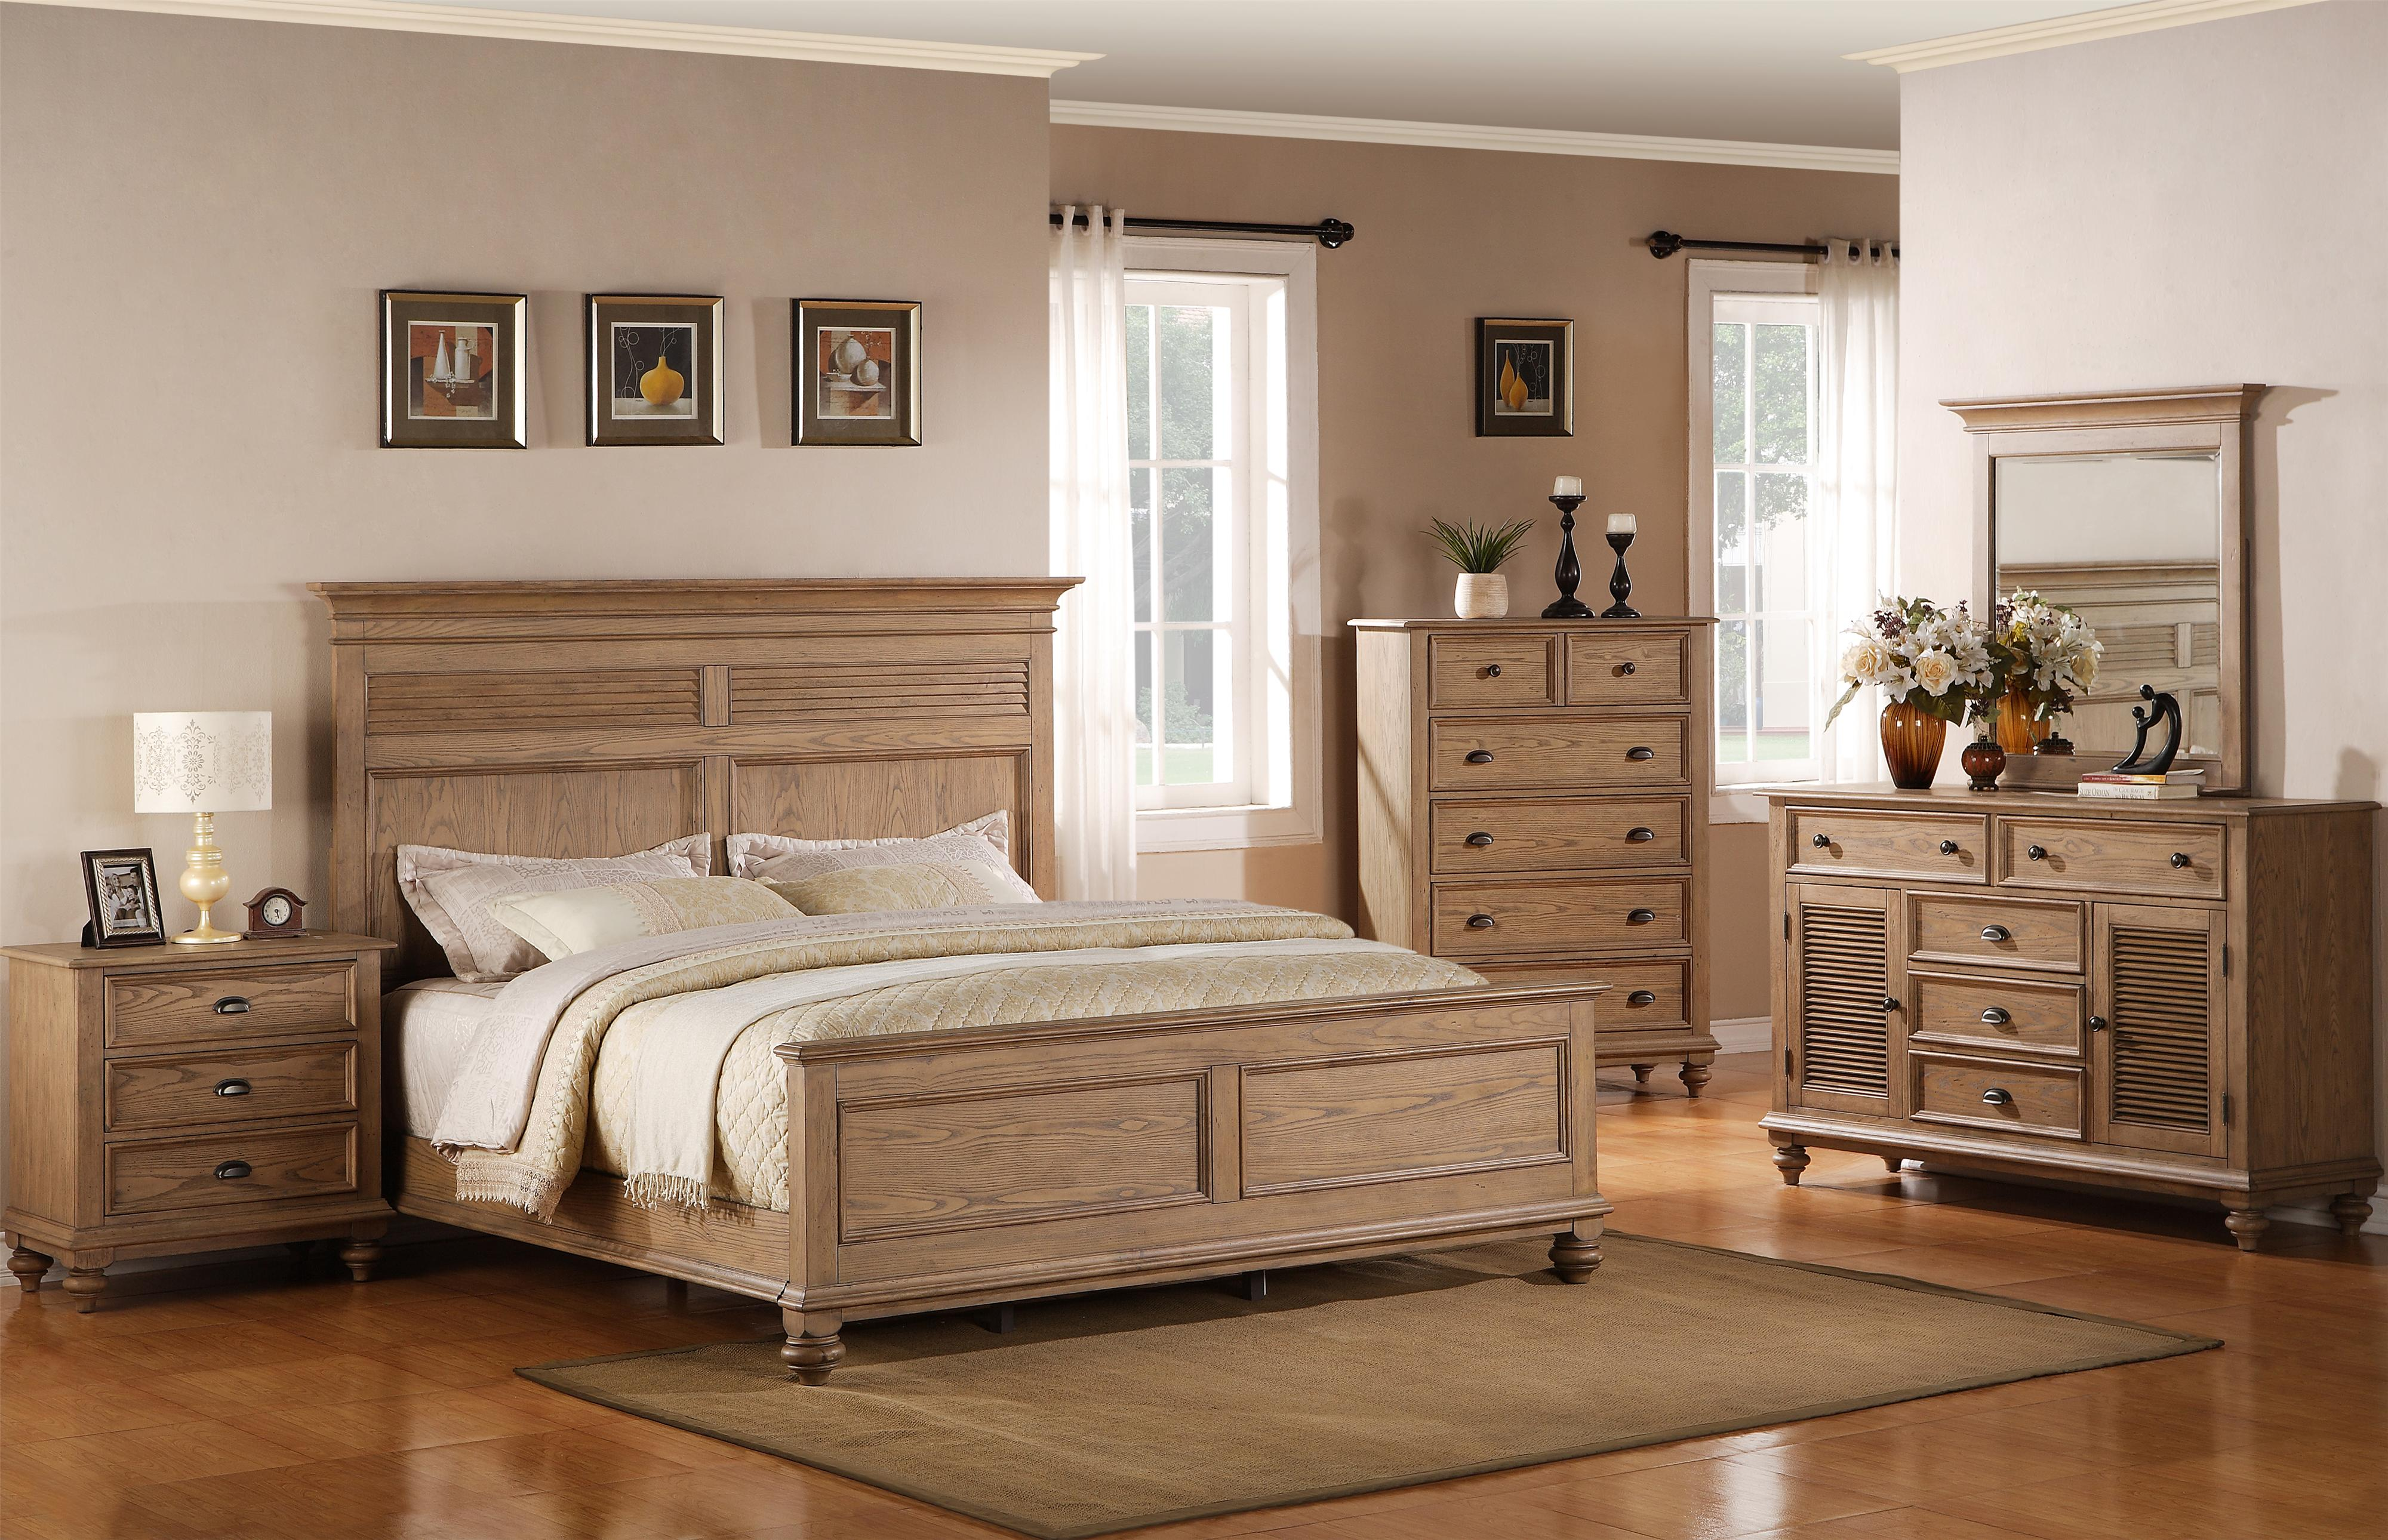 Riverside Furniture Coventry Full/Queen Bedroom Group - Item Number: 32400 F Q Bedroom Group 2